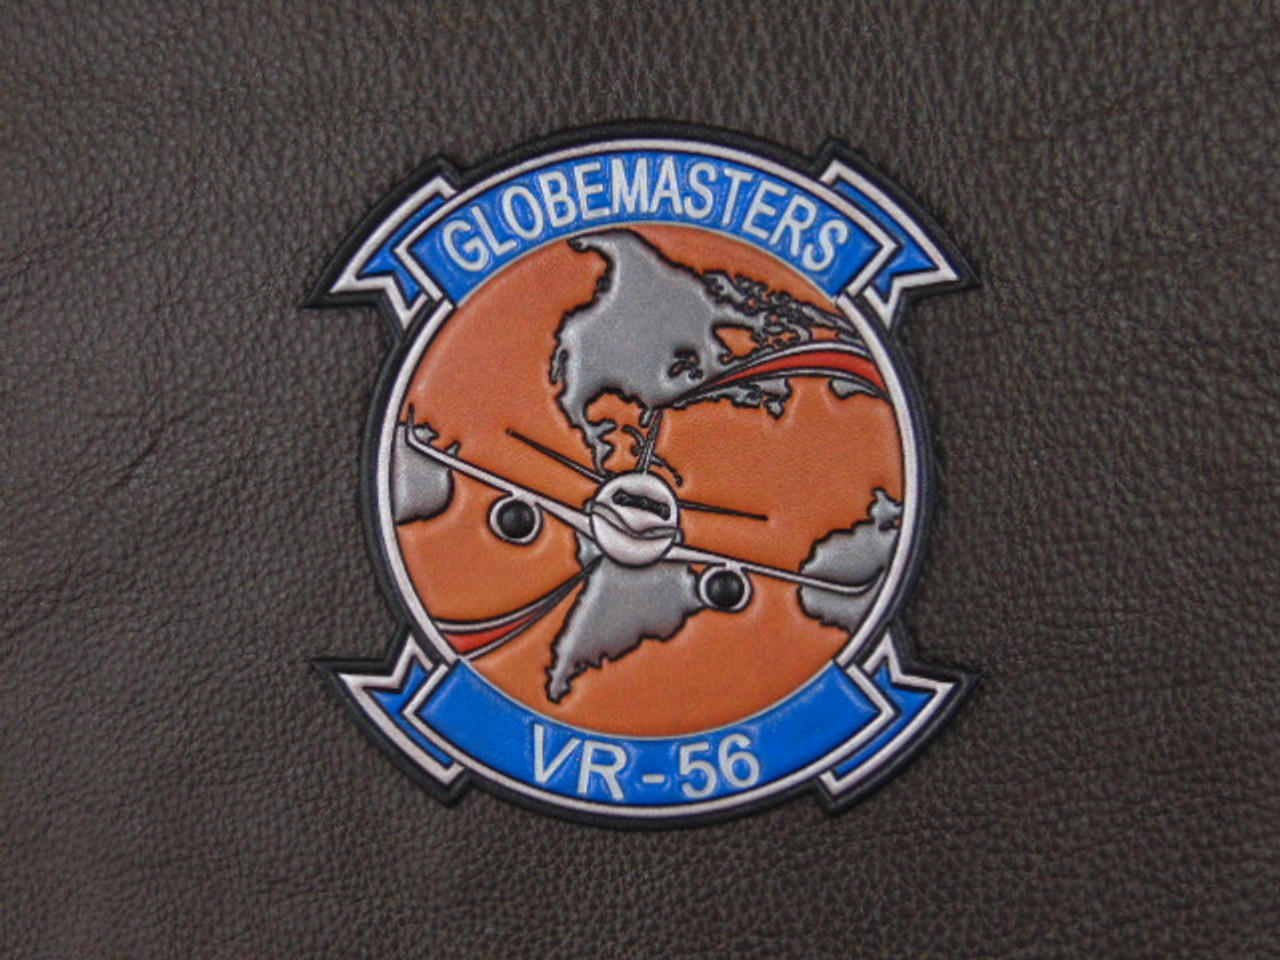 VR-56  GLOBEMASTERS (2020) Patch Classic Embossed